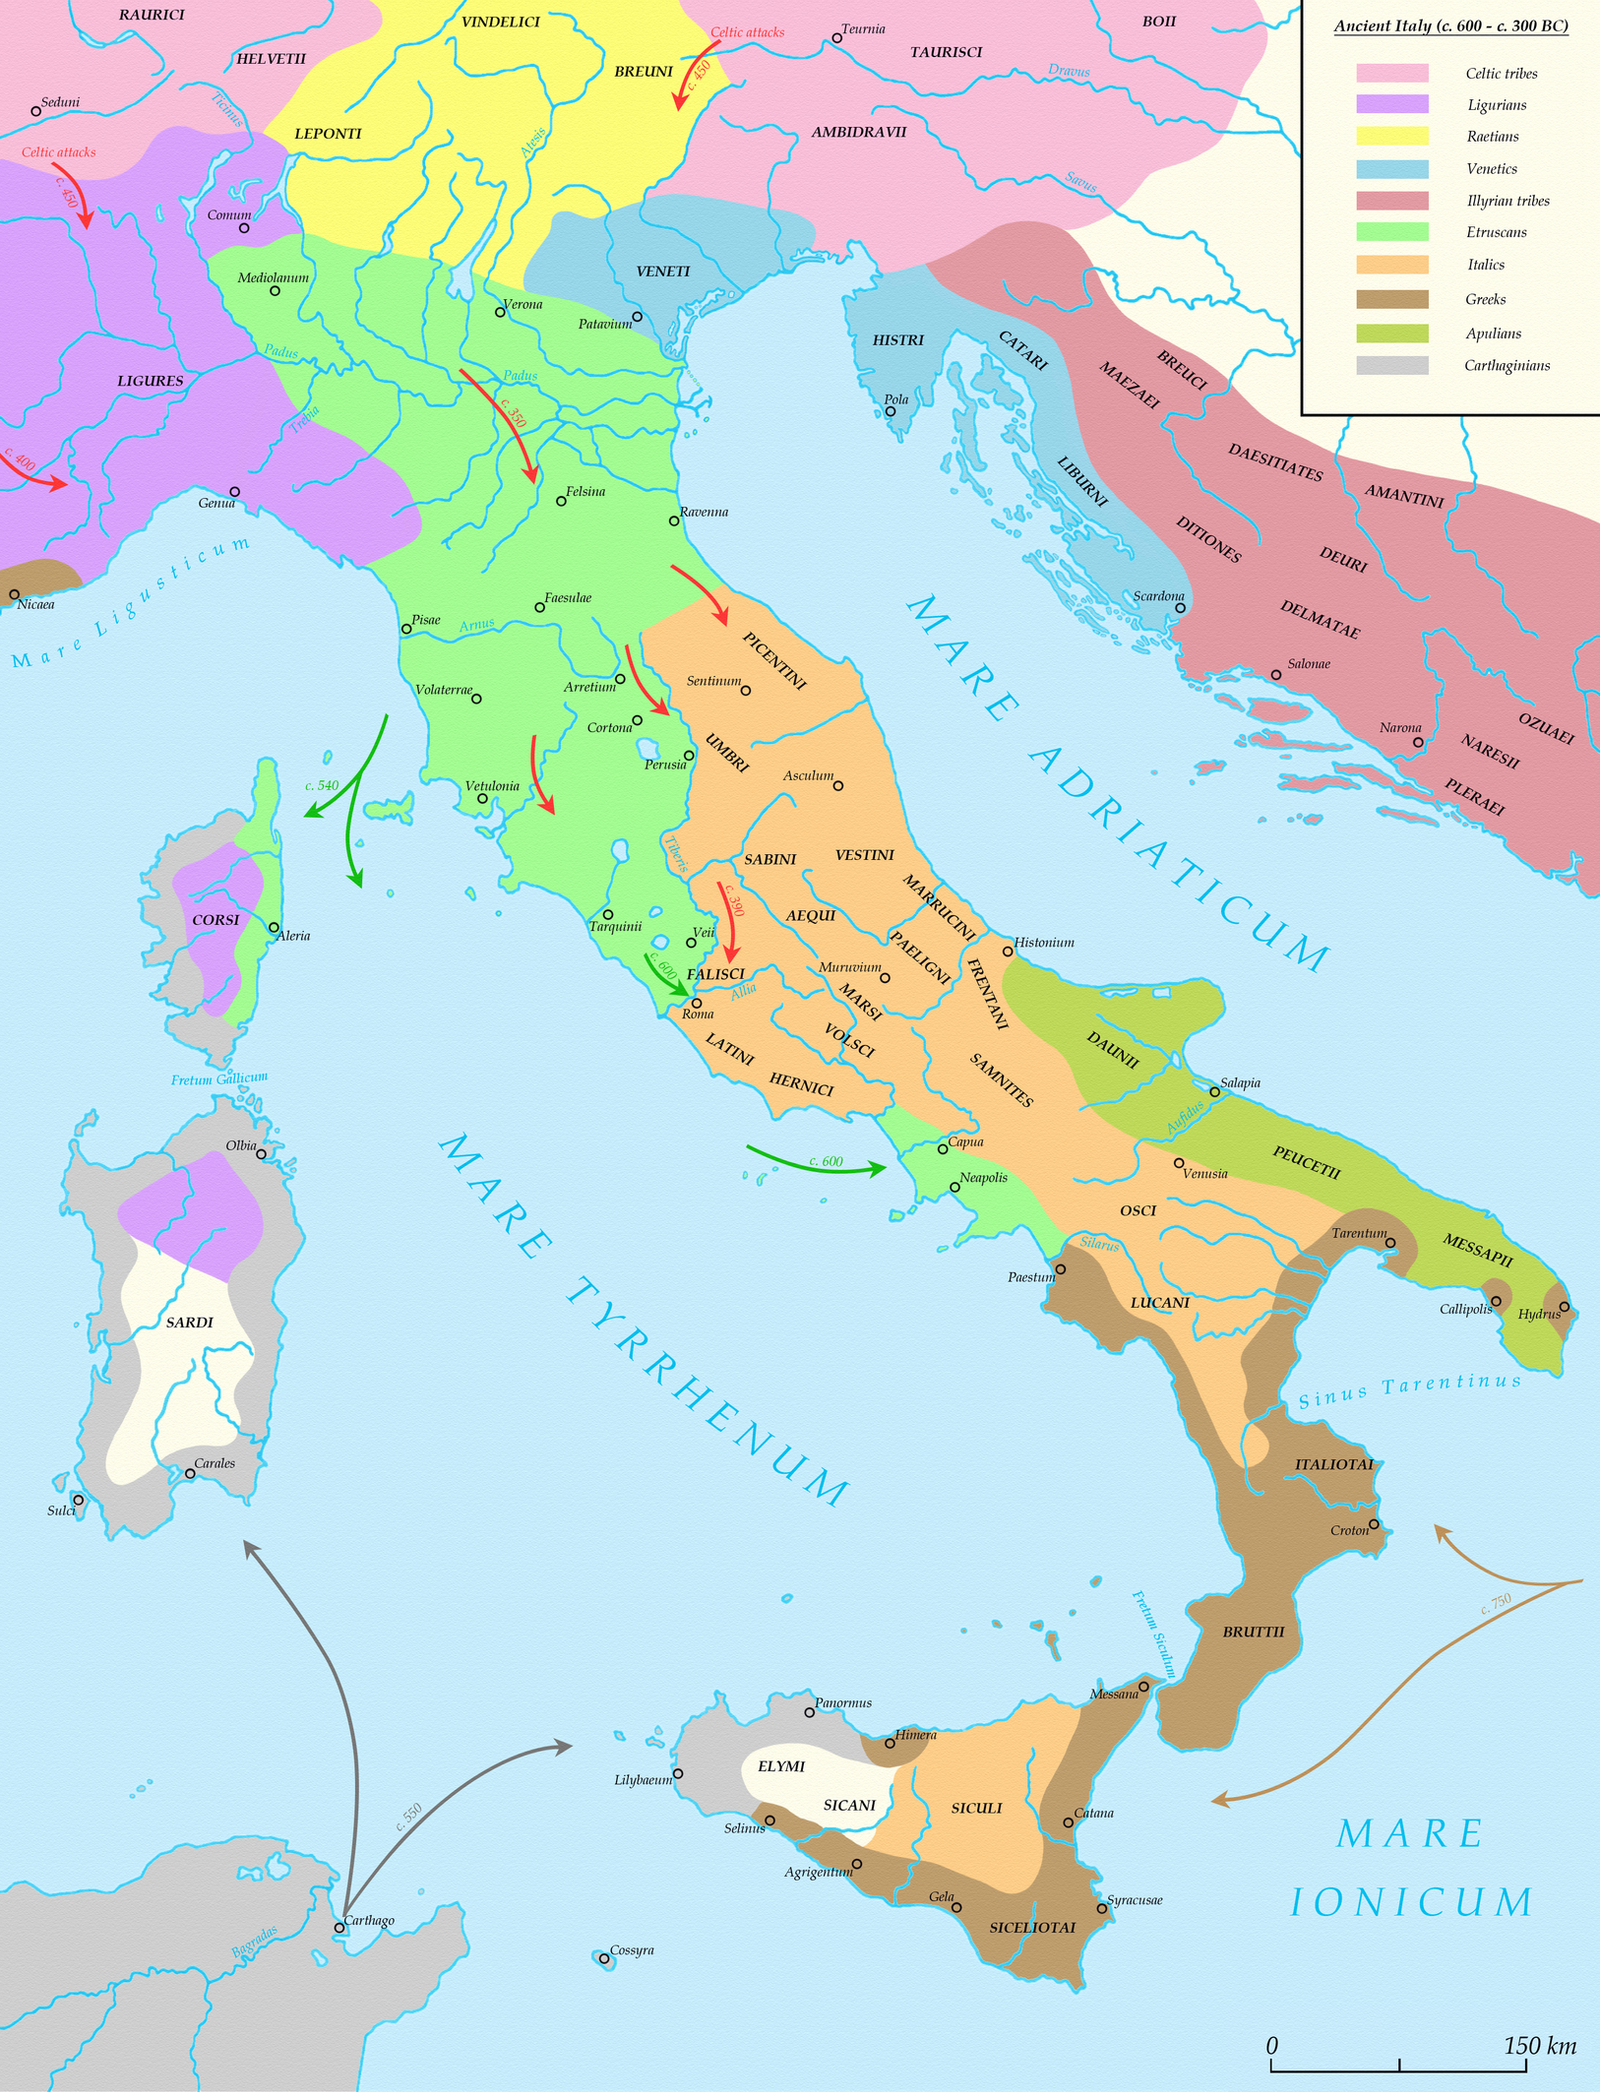 Ancient Italy C C BC By Undevicesimus On DeviantArt - Ancient rome map po river